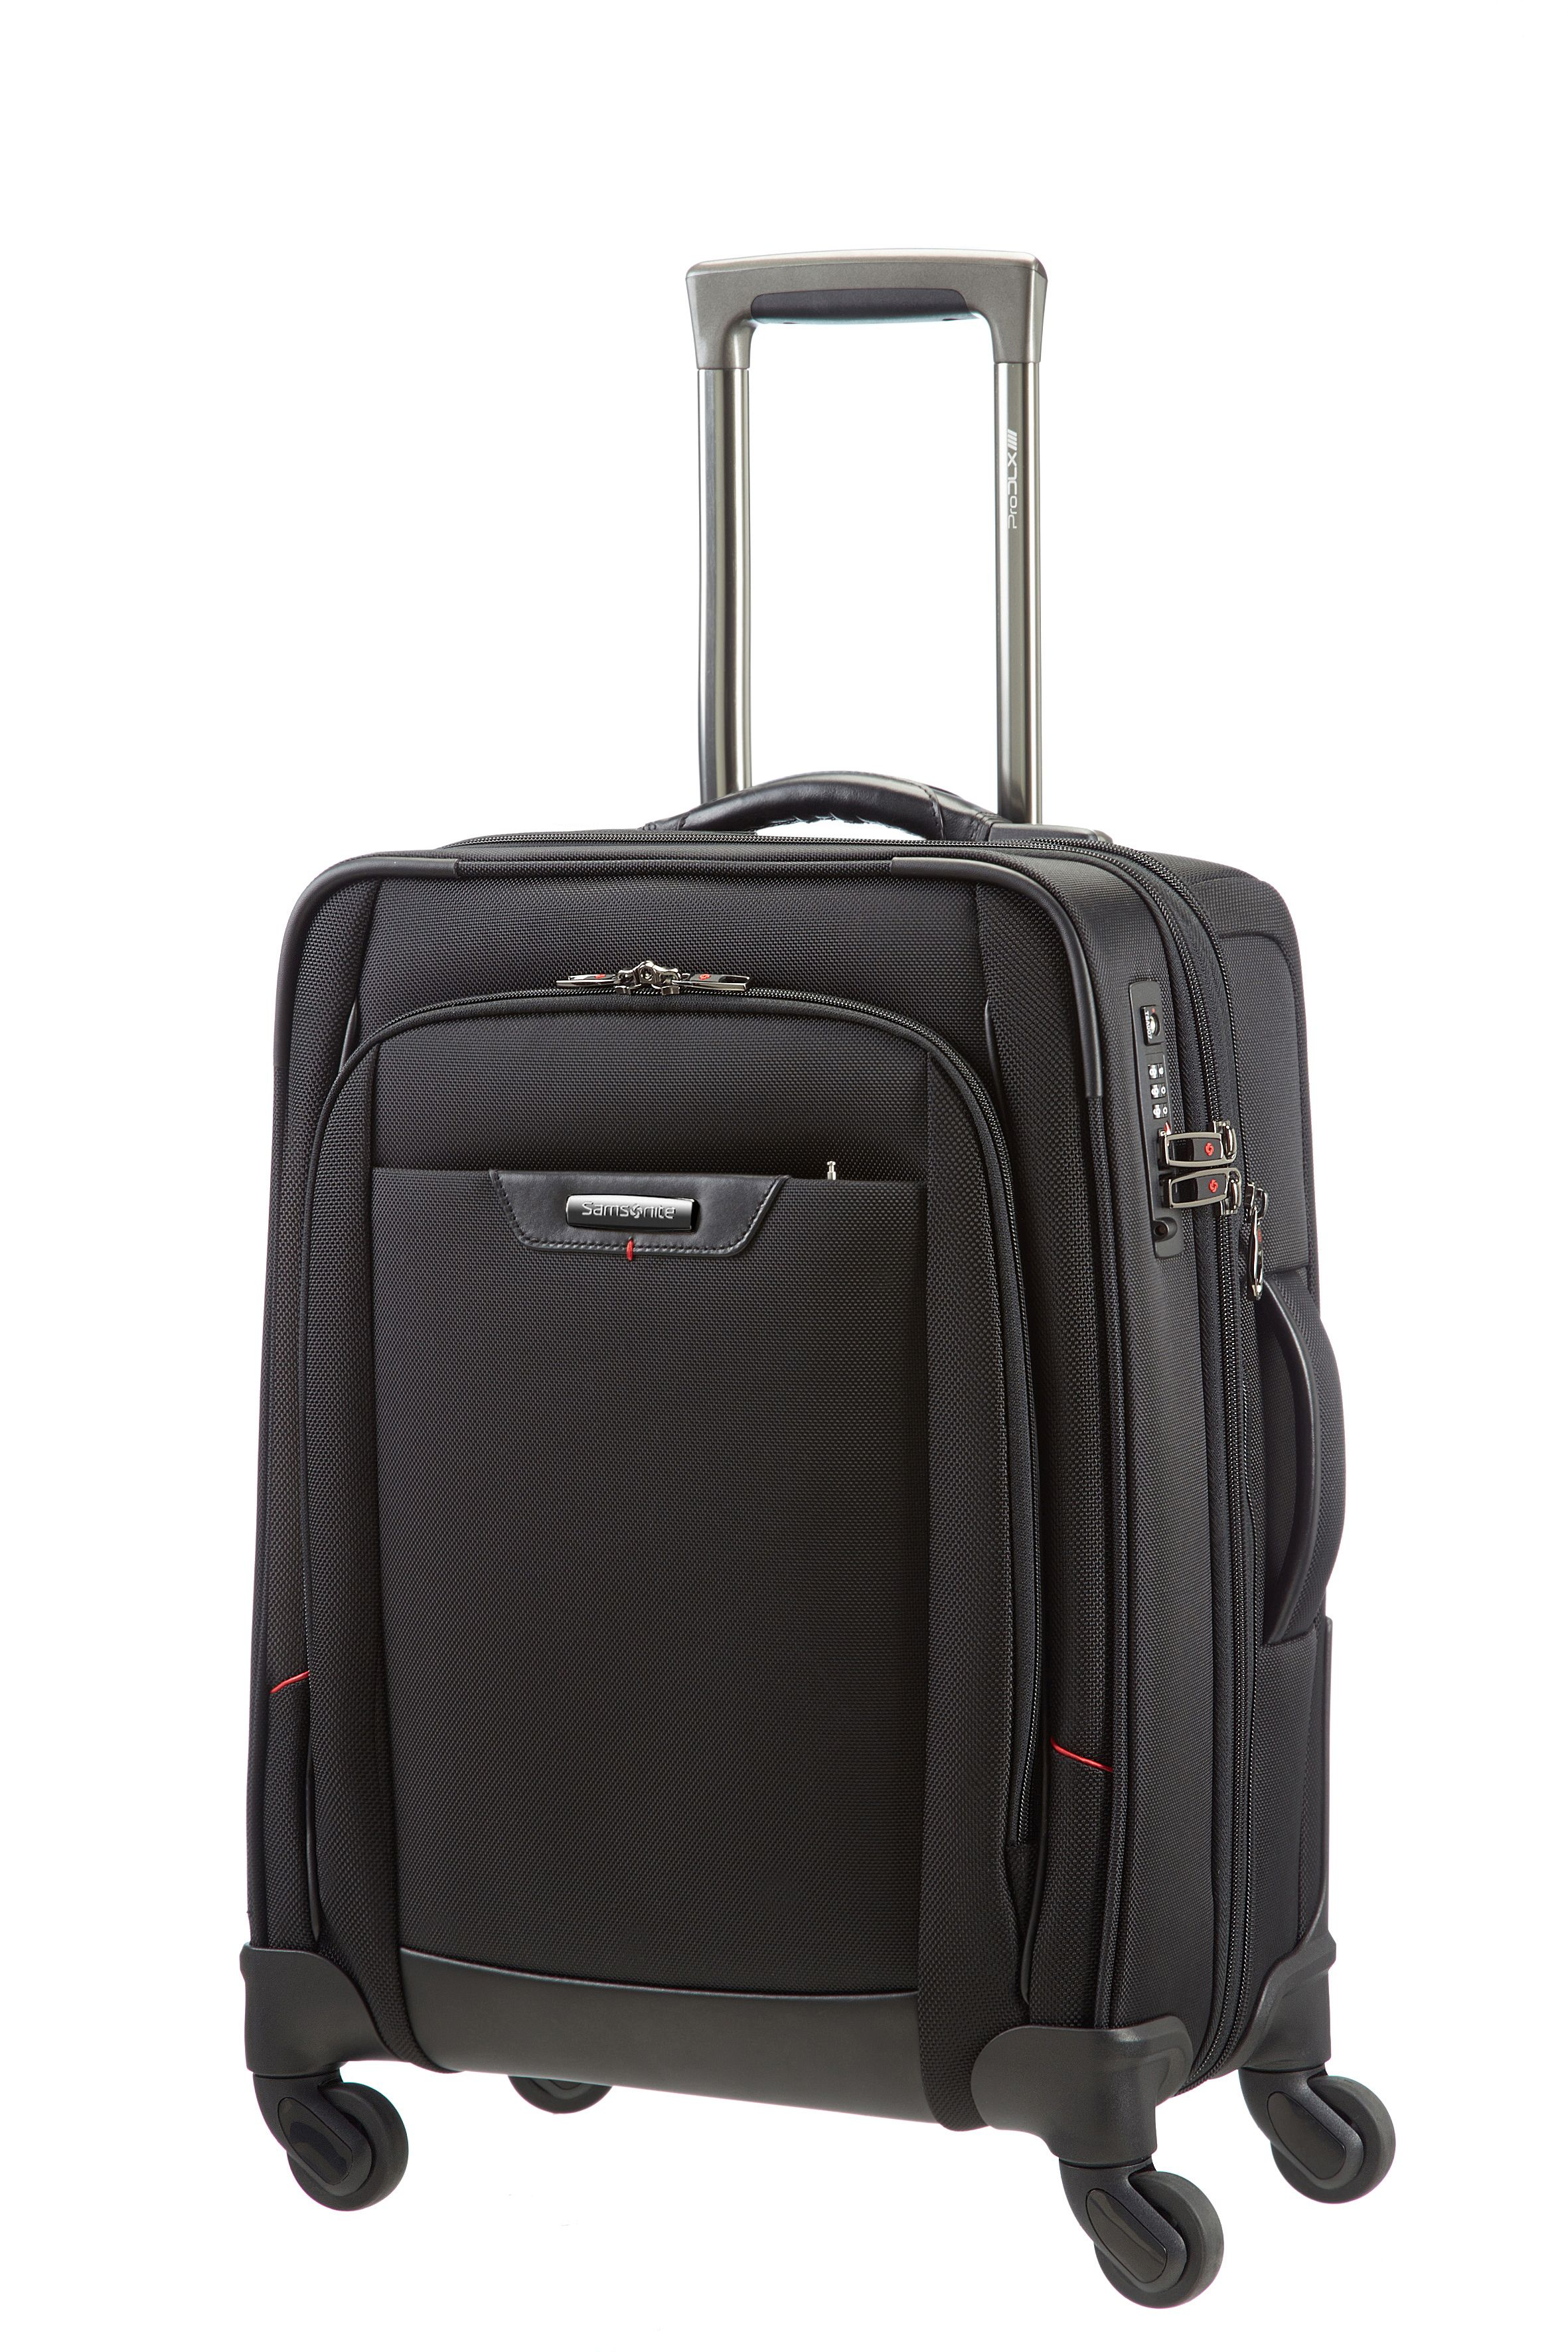 Pro-DLX III Black Spinner 55cm #Samsonite #ProDLX #Travel ...